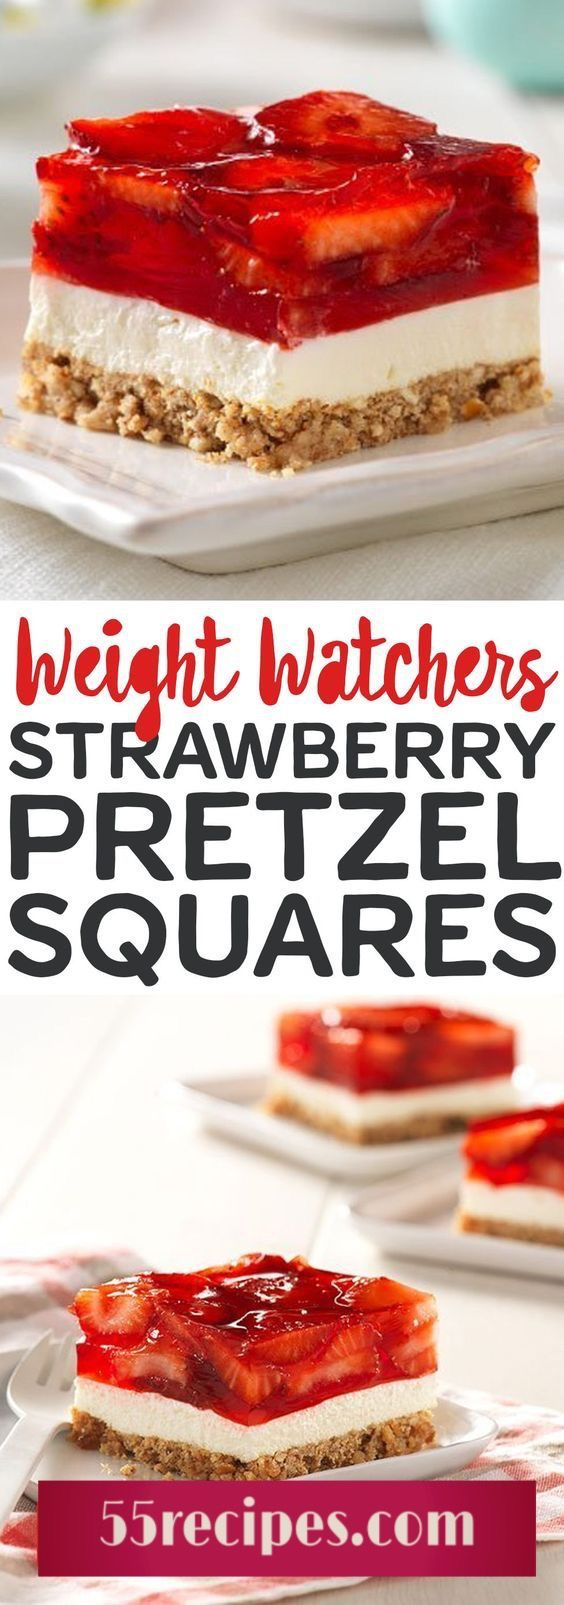 Pretzel Squares Weight watchers strawberry pretzel squaresWeight watchers strawberry pretzel squares